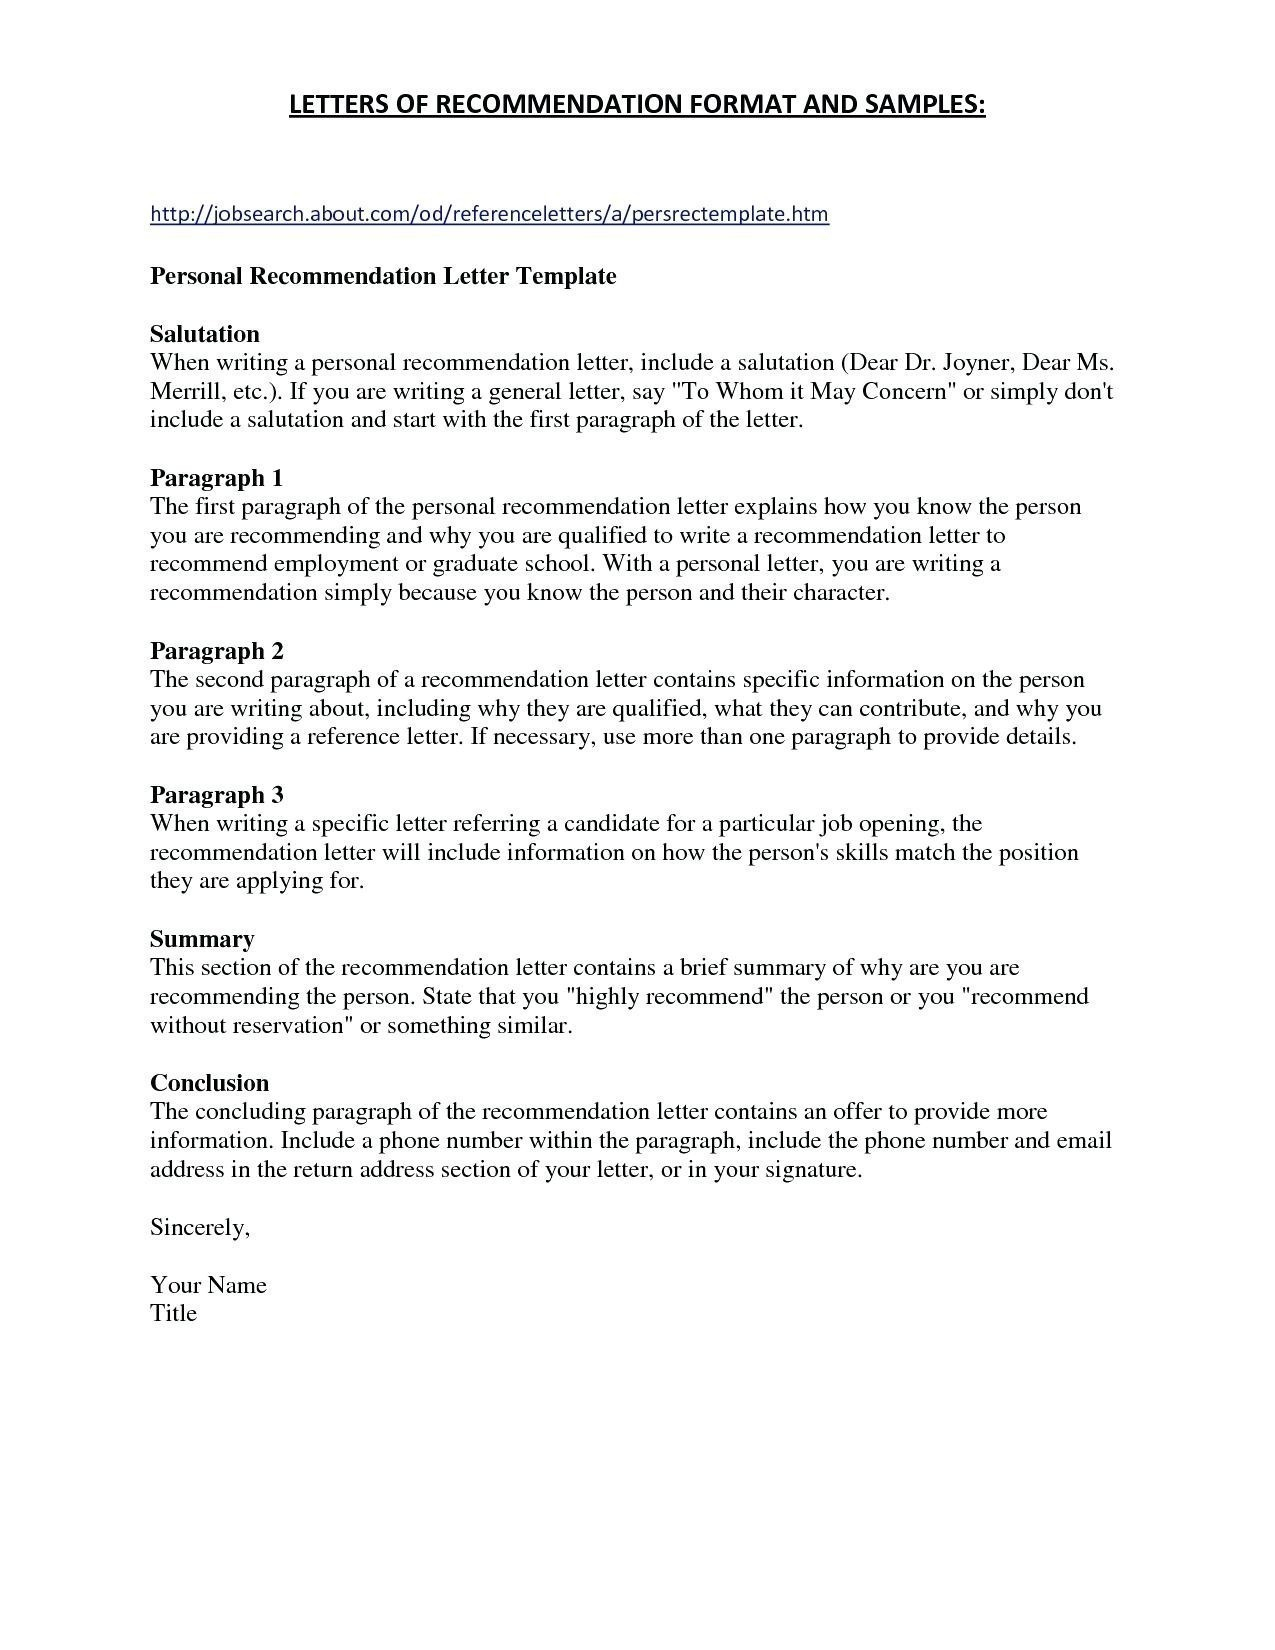 Email Letter Of Recommendation Template - Template for Letter Re Mendation for A Job New Sample Job Re